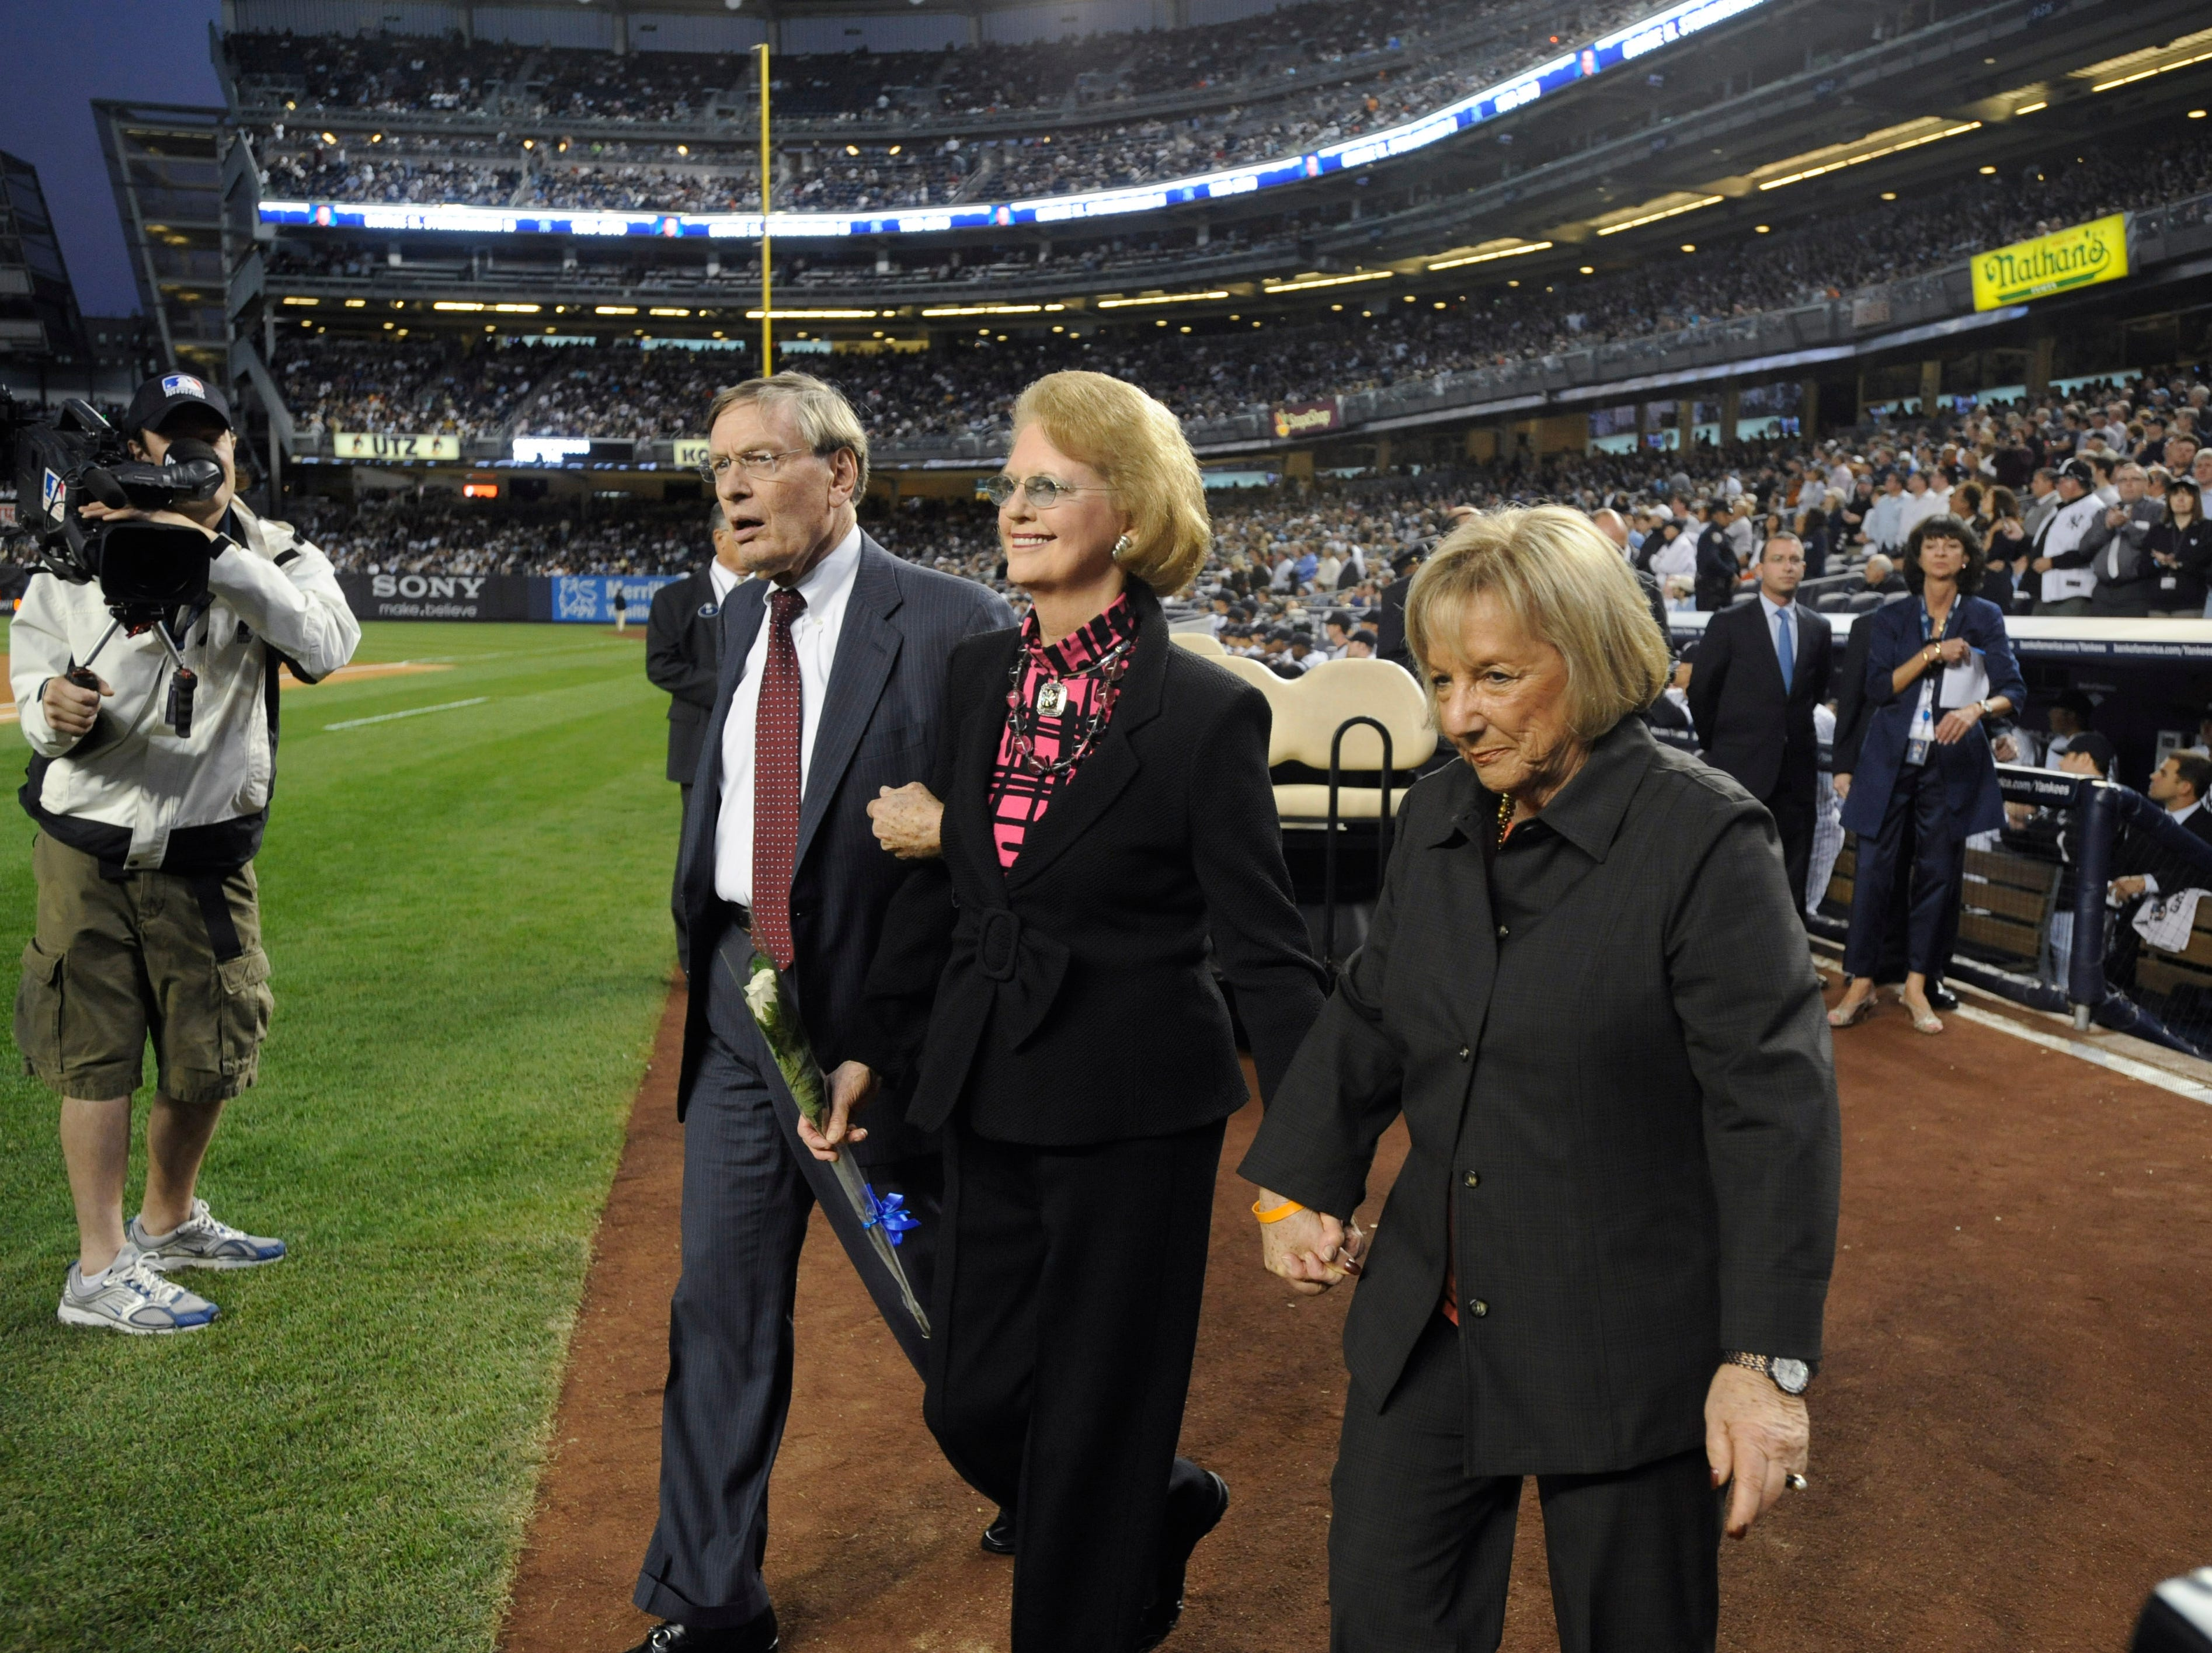 Baseball Commissioner Bud Selig, left, and his wife, Sue, right, escort Joan Steinbrenner, the widow of the late New York Yankees owner, George Steinbrenner, onto the field Monday, Sept. 20, 2010 at Yankee Stadium in New York. (AP Photo/Bill Kostroun)